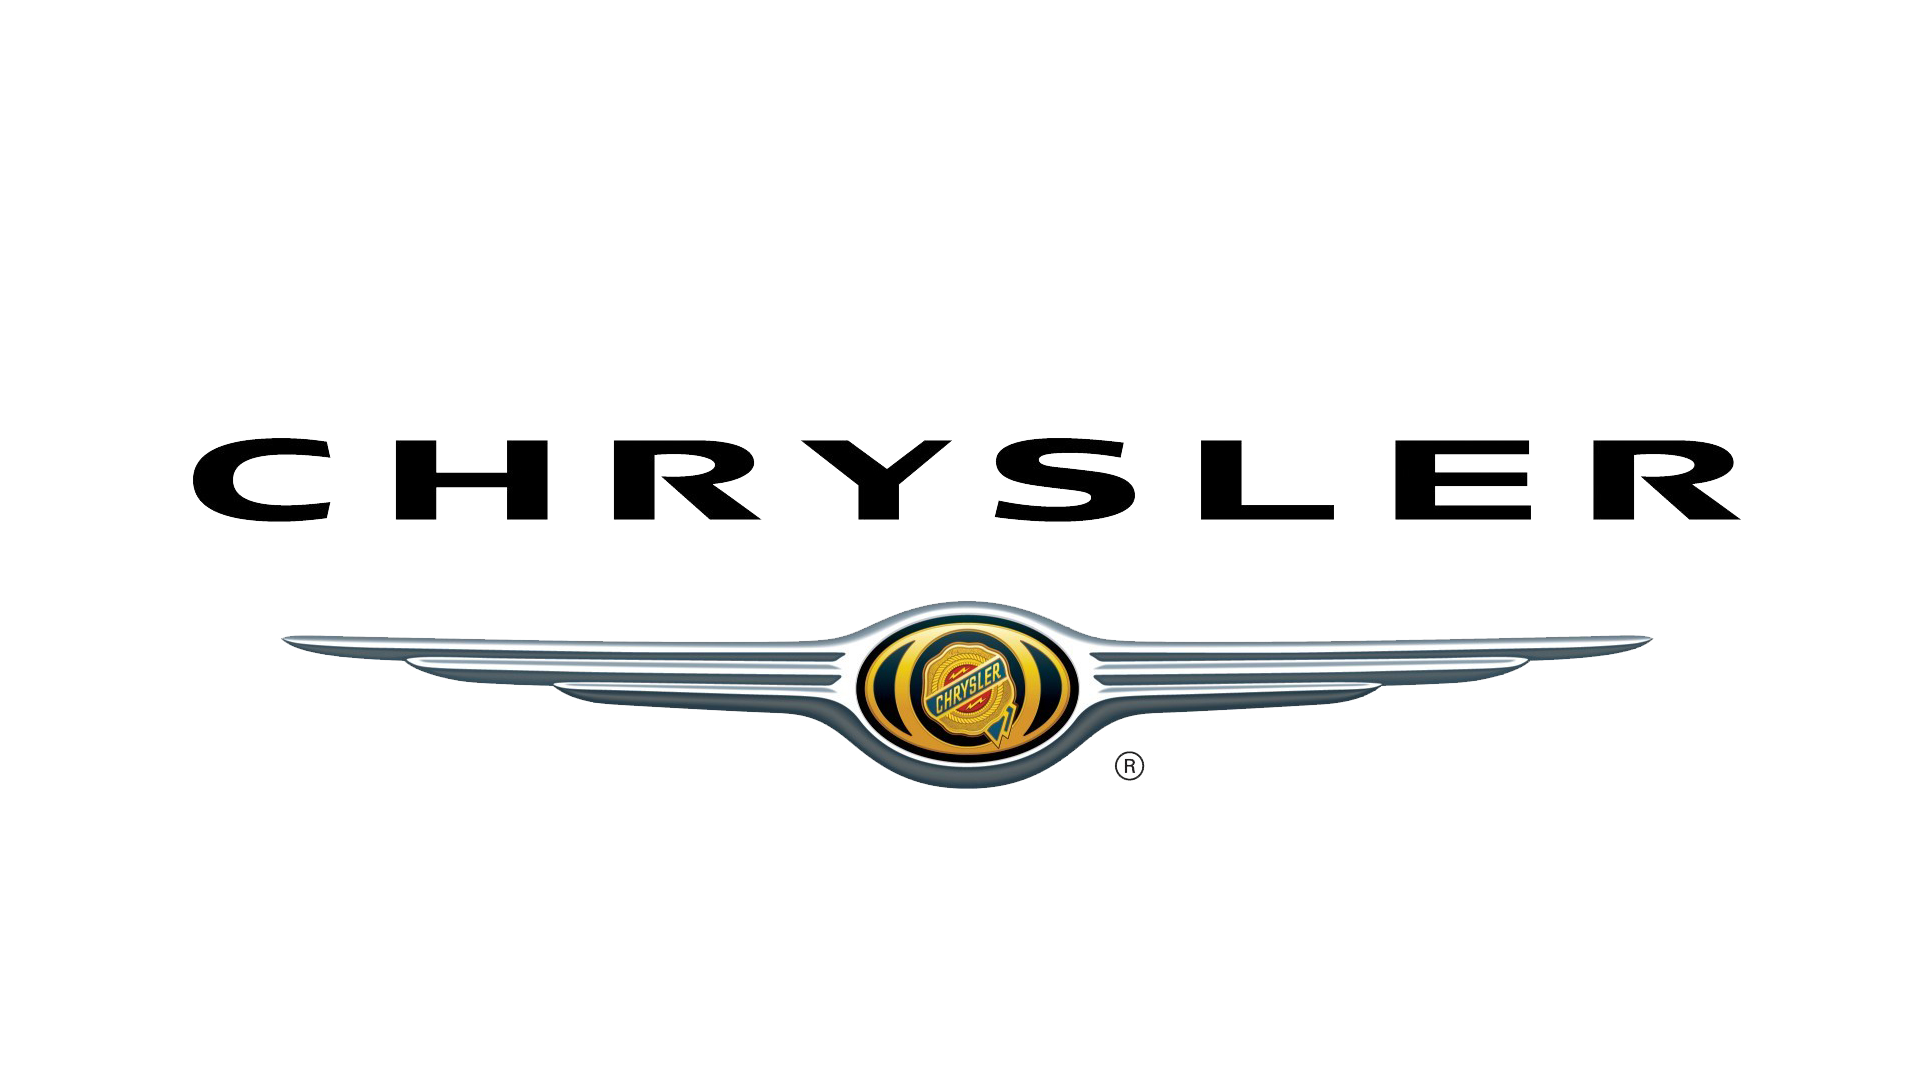 Chrysler Logo, Hd Png, Meanin